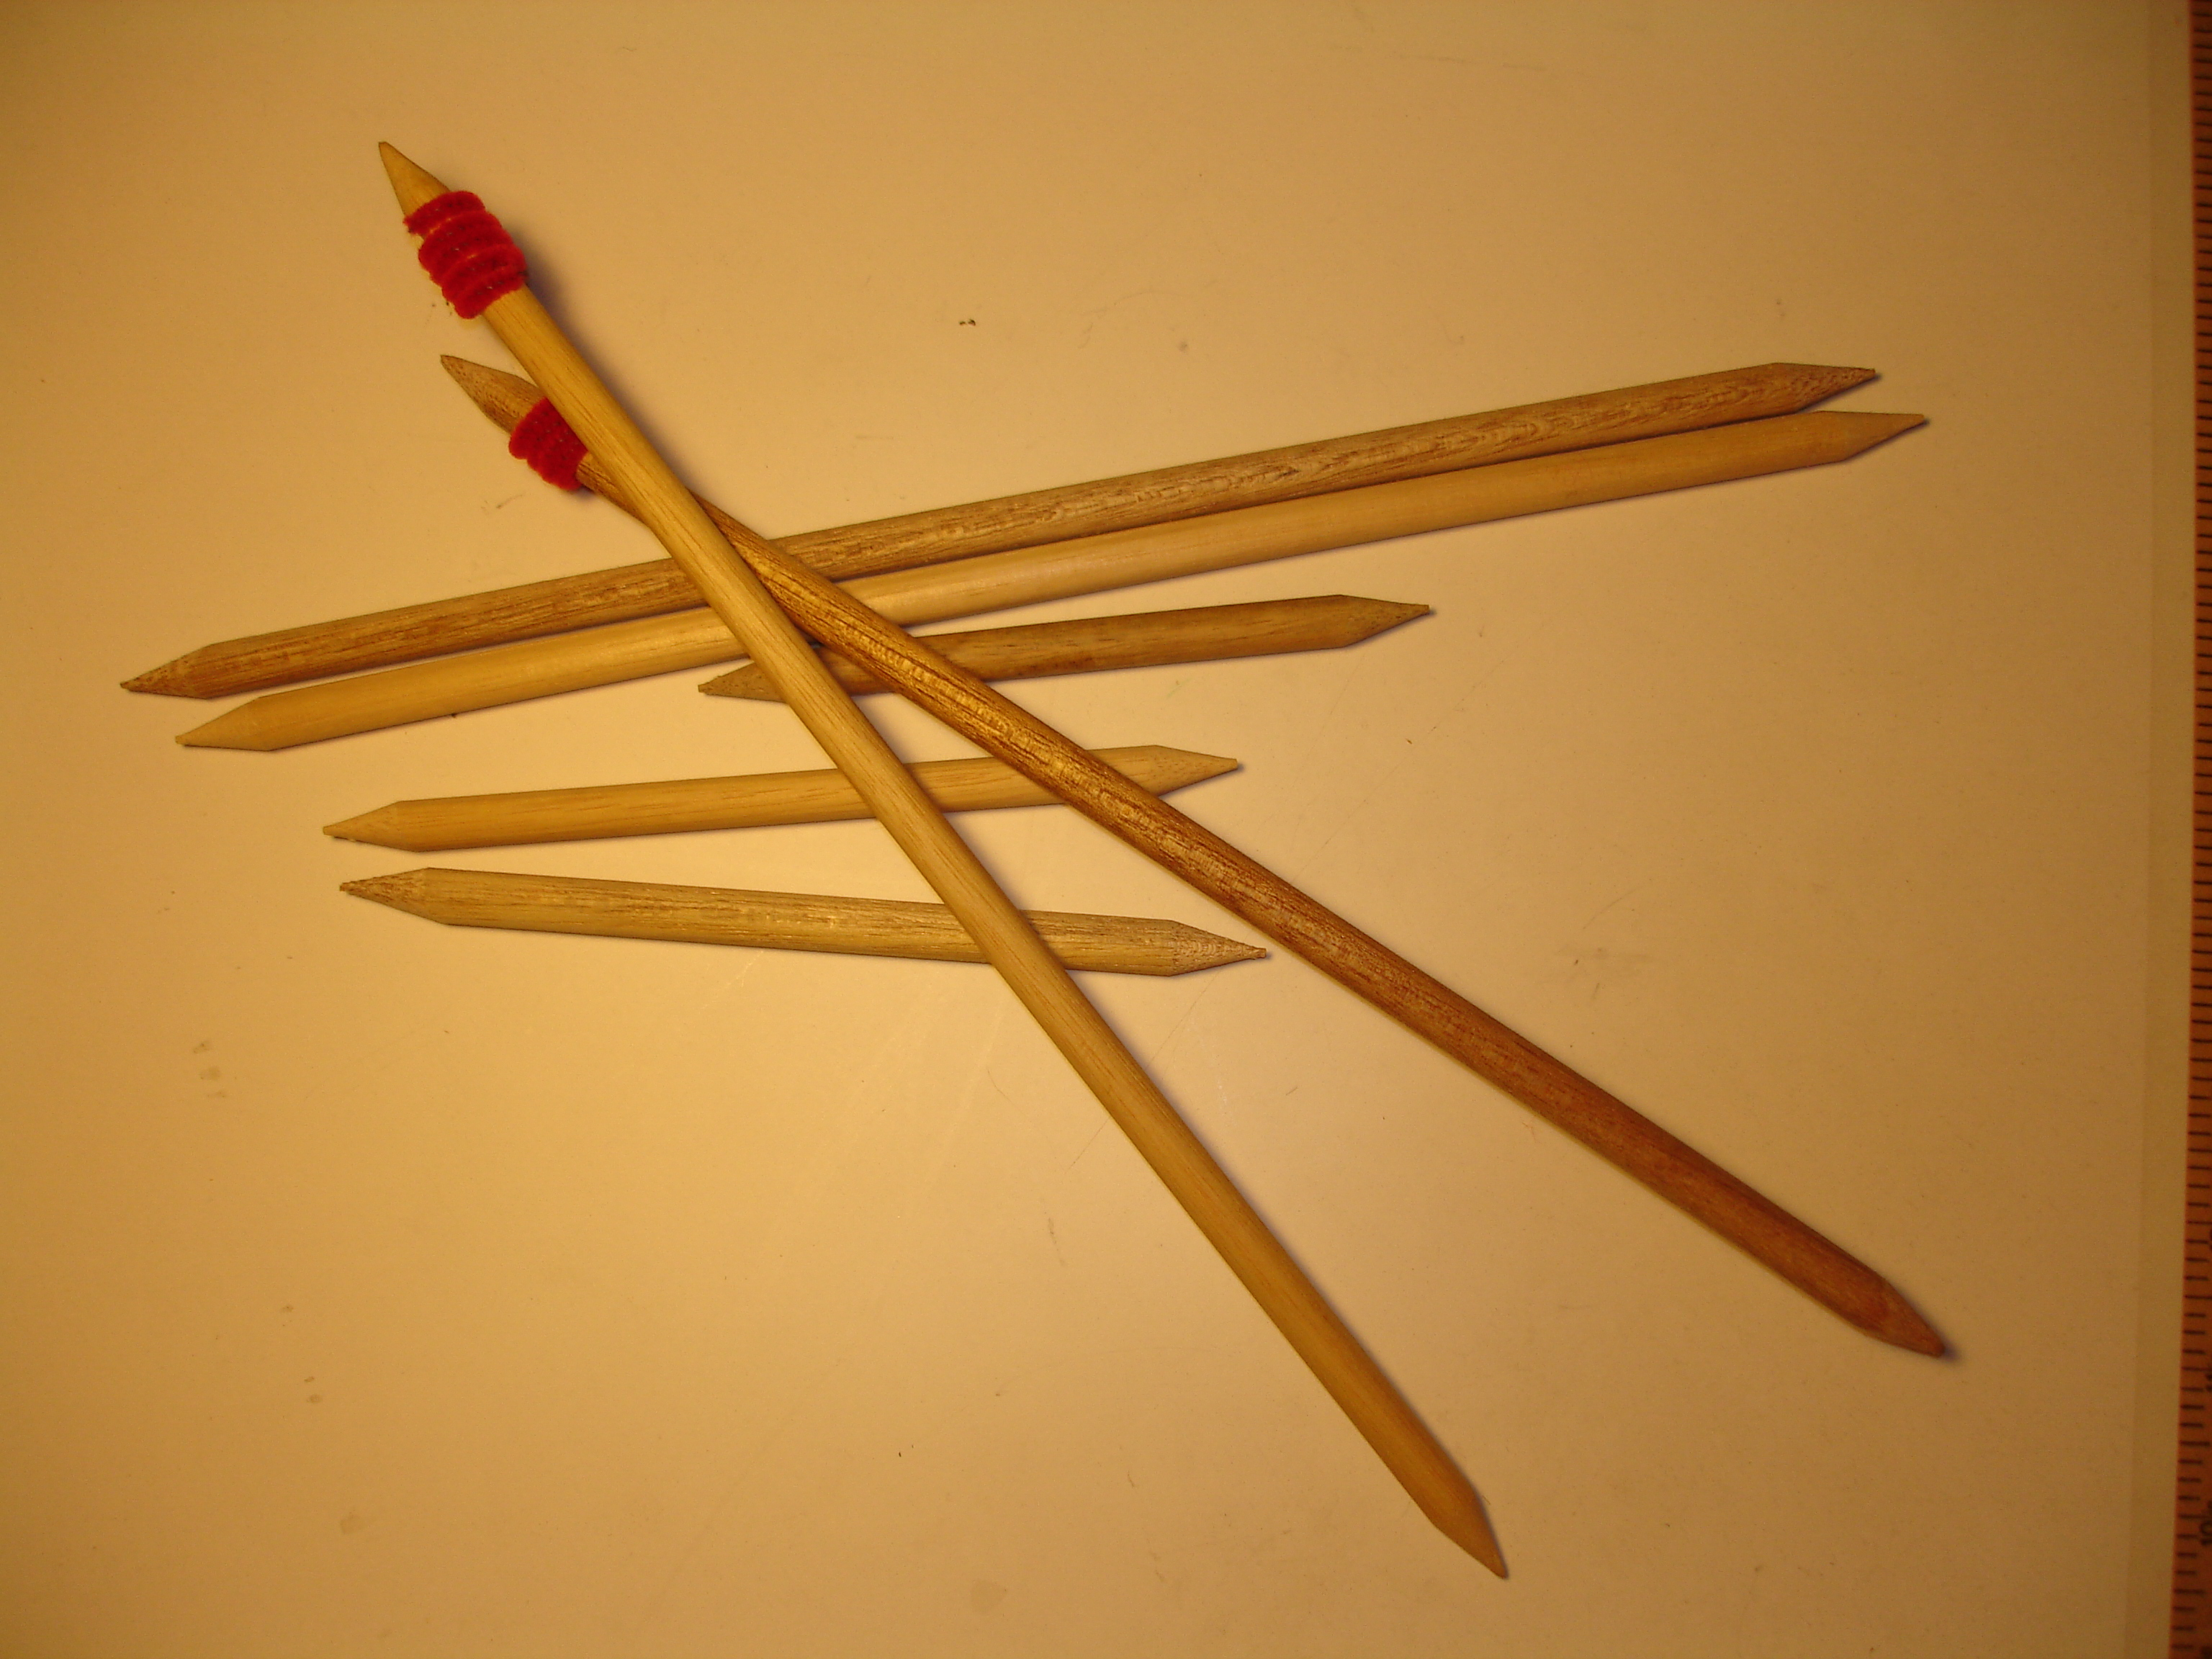 Knitting Needles On A Budget